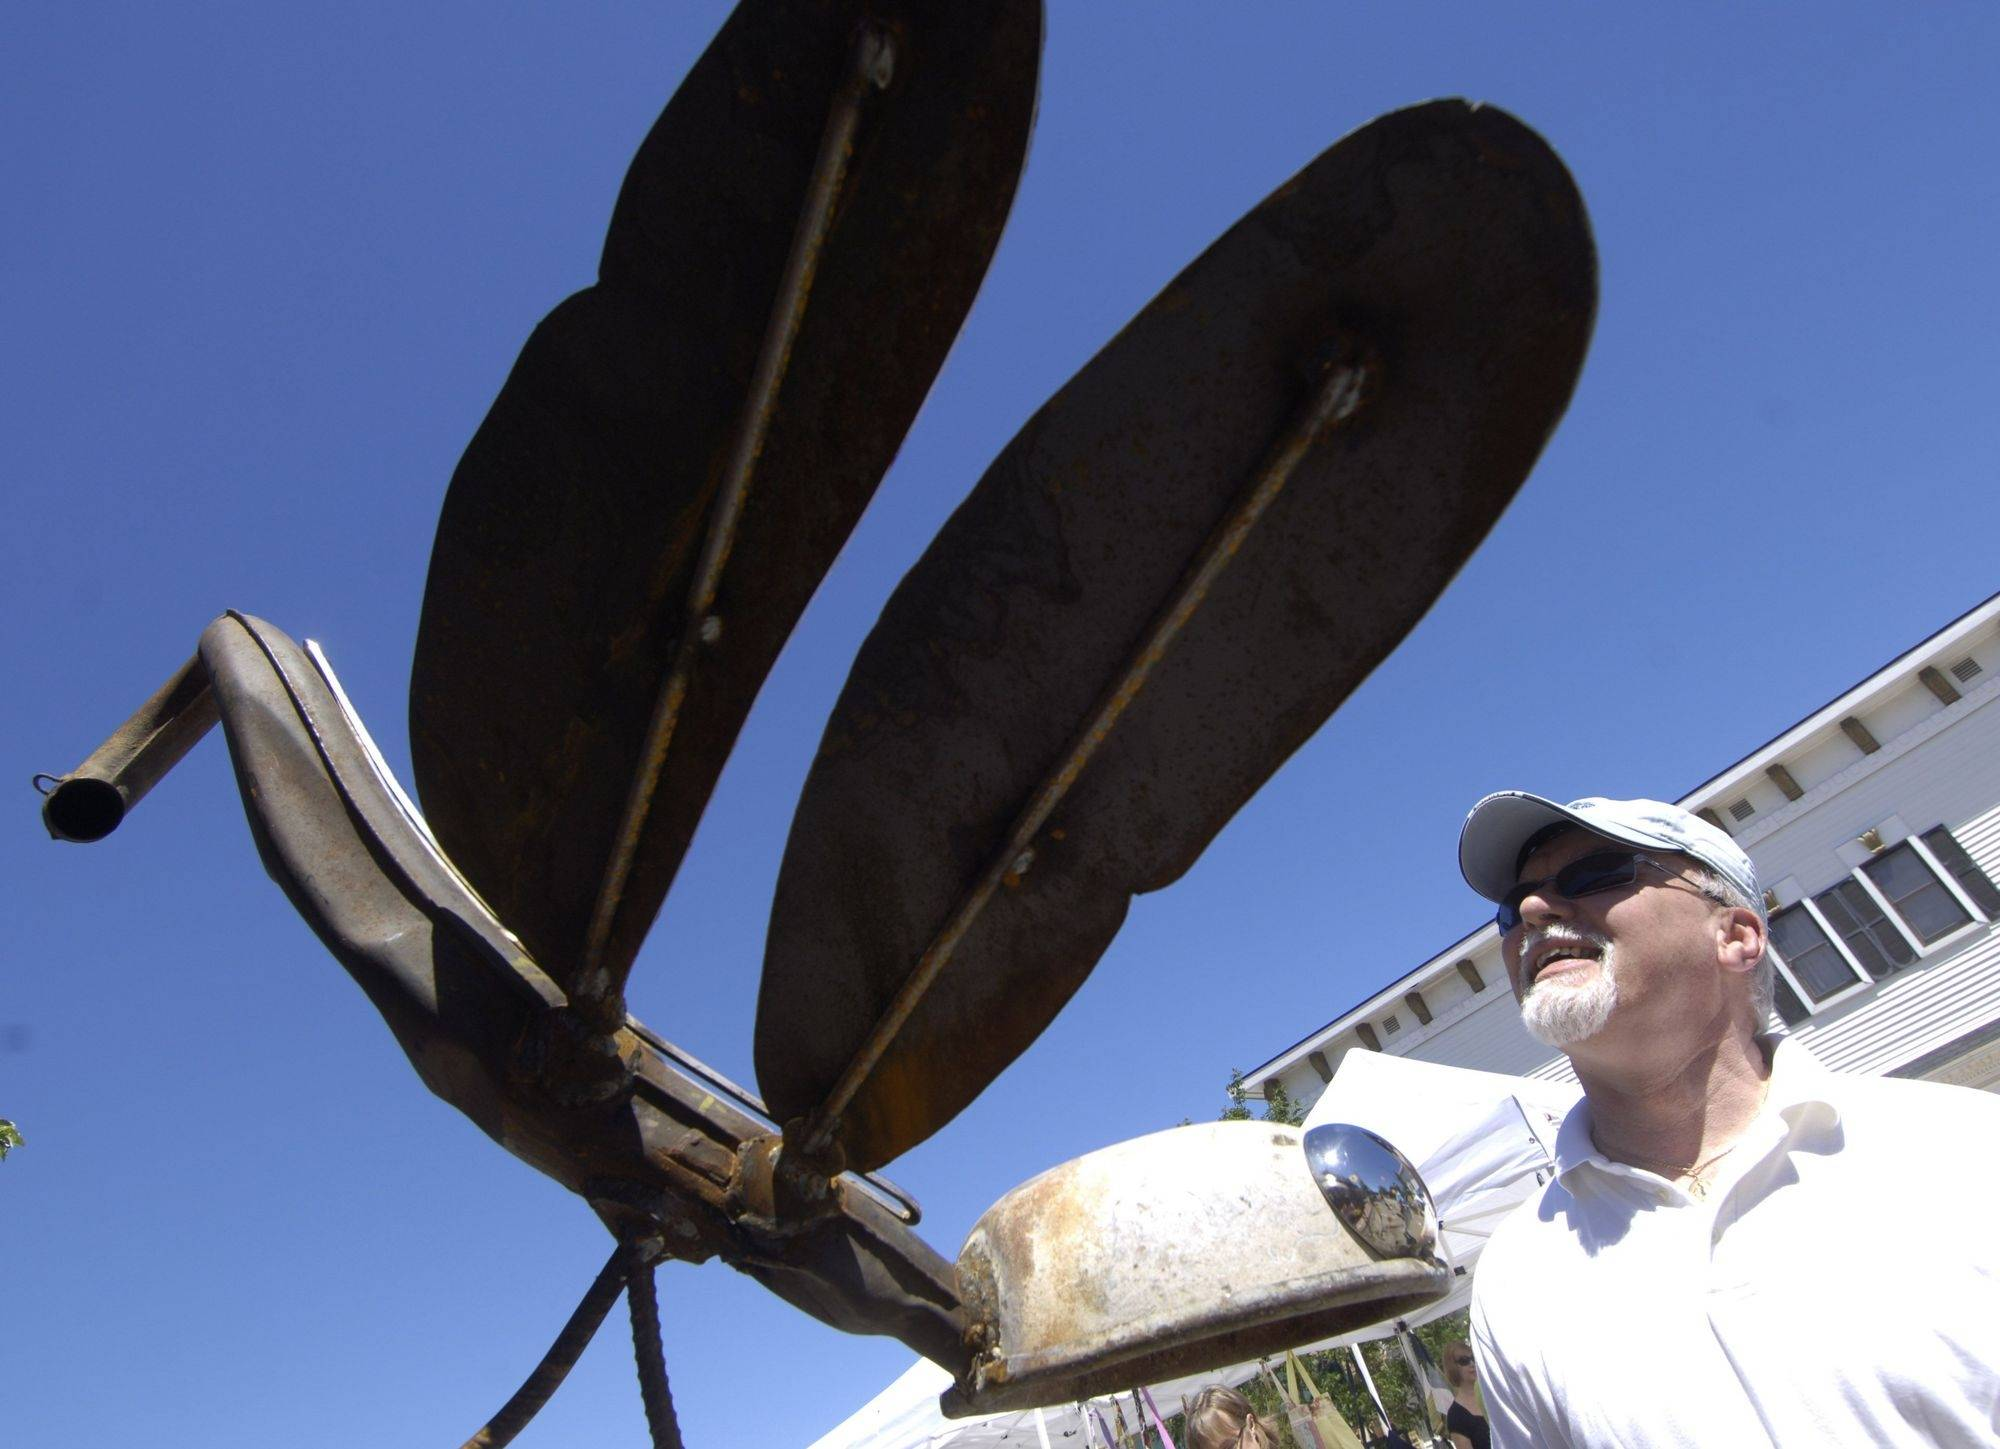 Tom Morris of Grayslake views a dragonfly sculpture made by T-N-A Garden Art during the Grayslake Arts Festival Saturday.